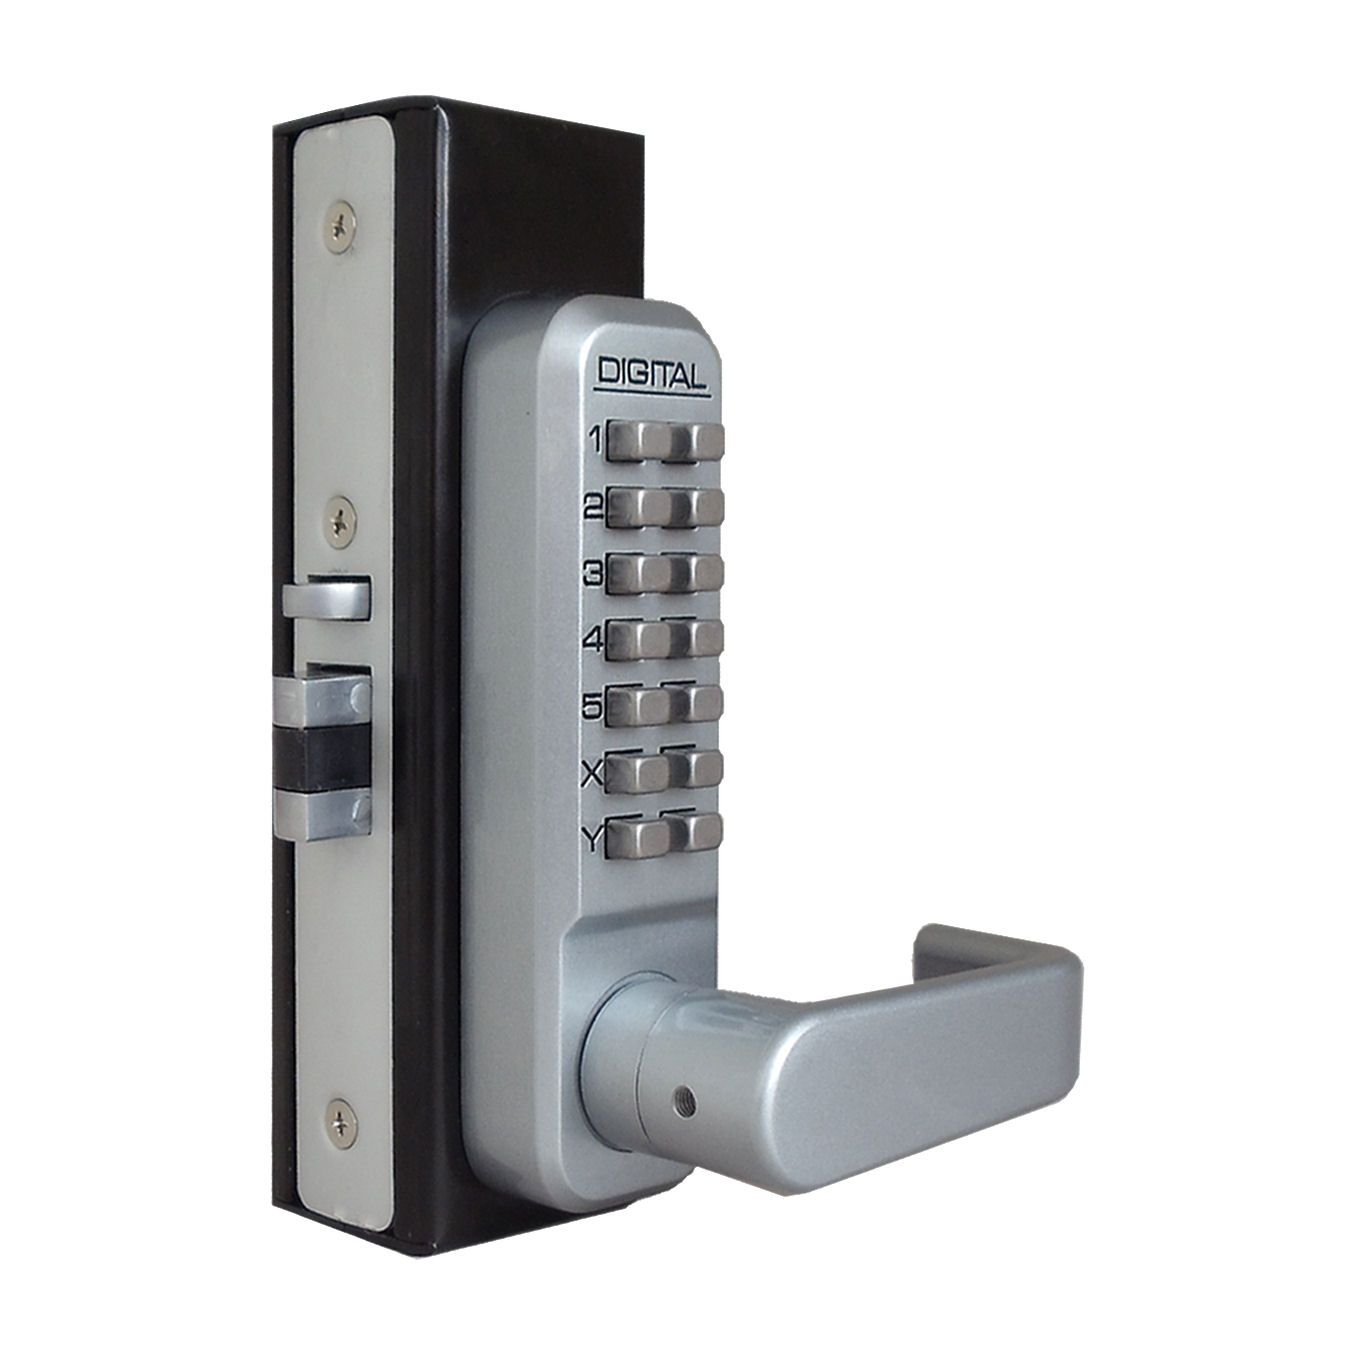 Lockey 2985dc Narrow Stile Double Combination Lock Keyless Door Lock Digital Door Lock Smart Door Locks